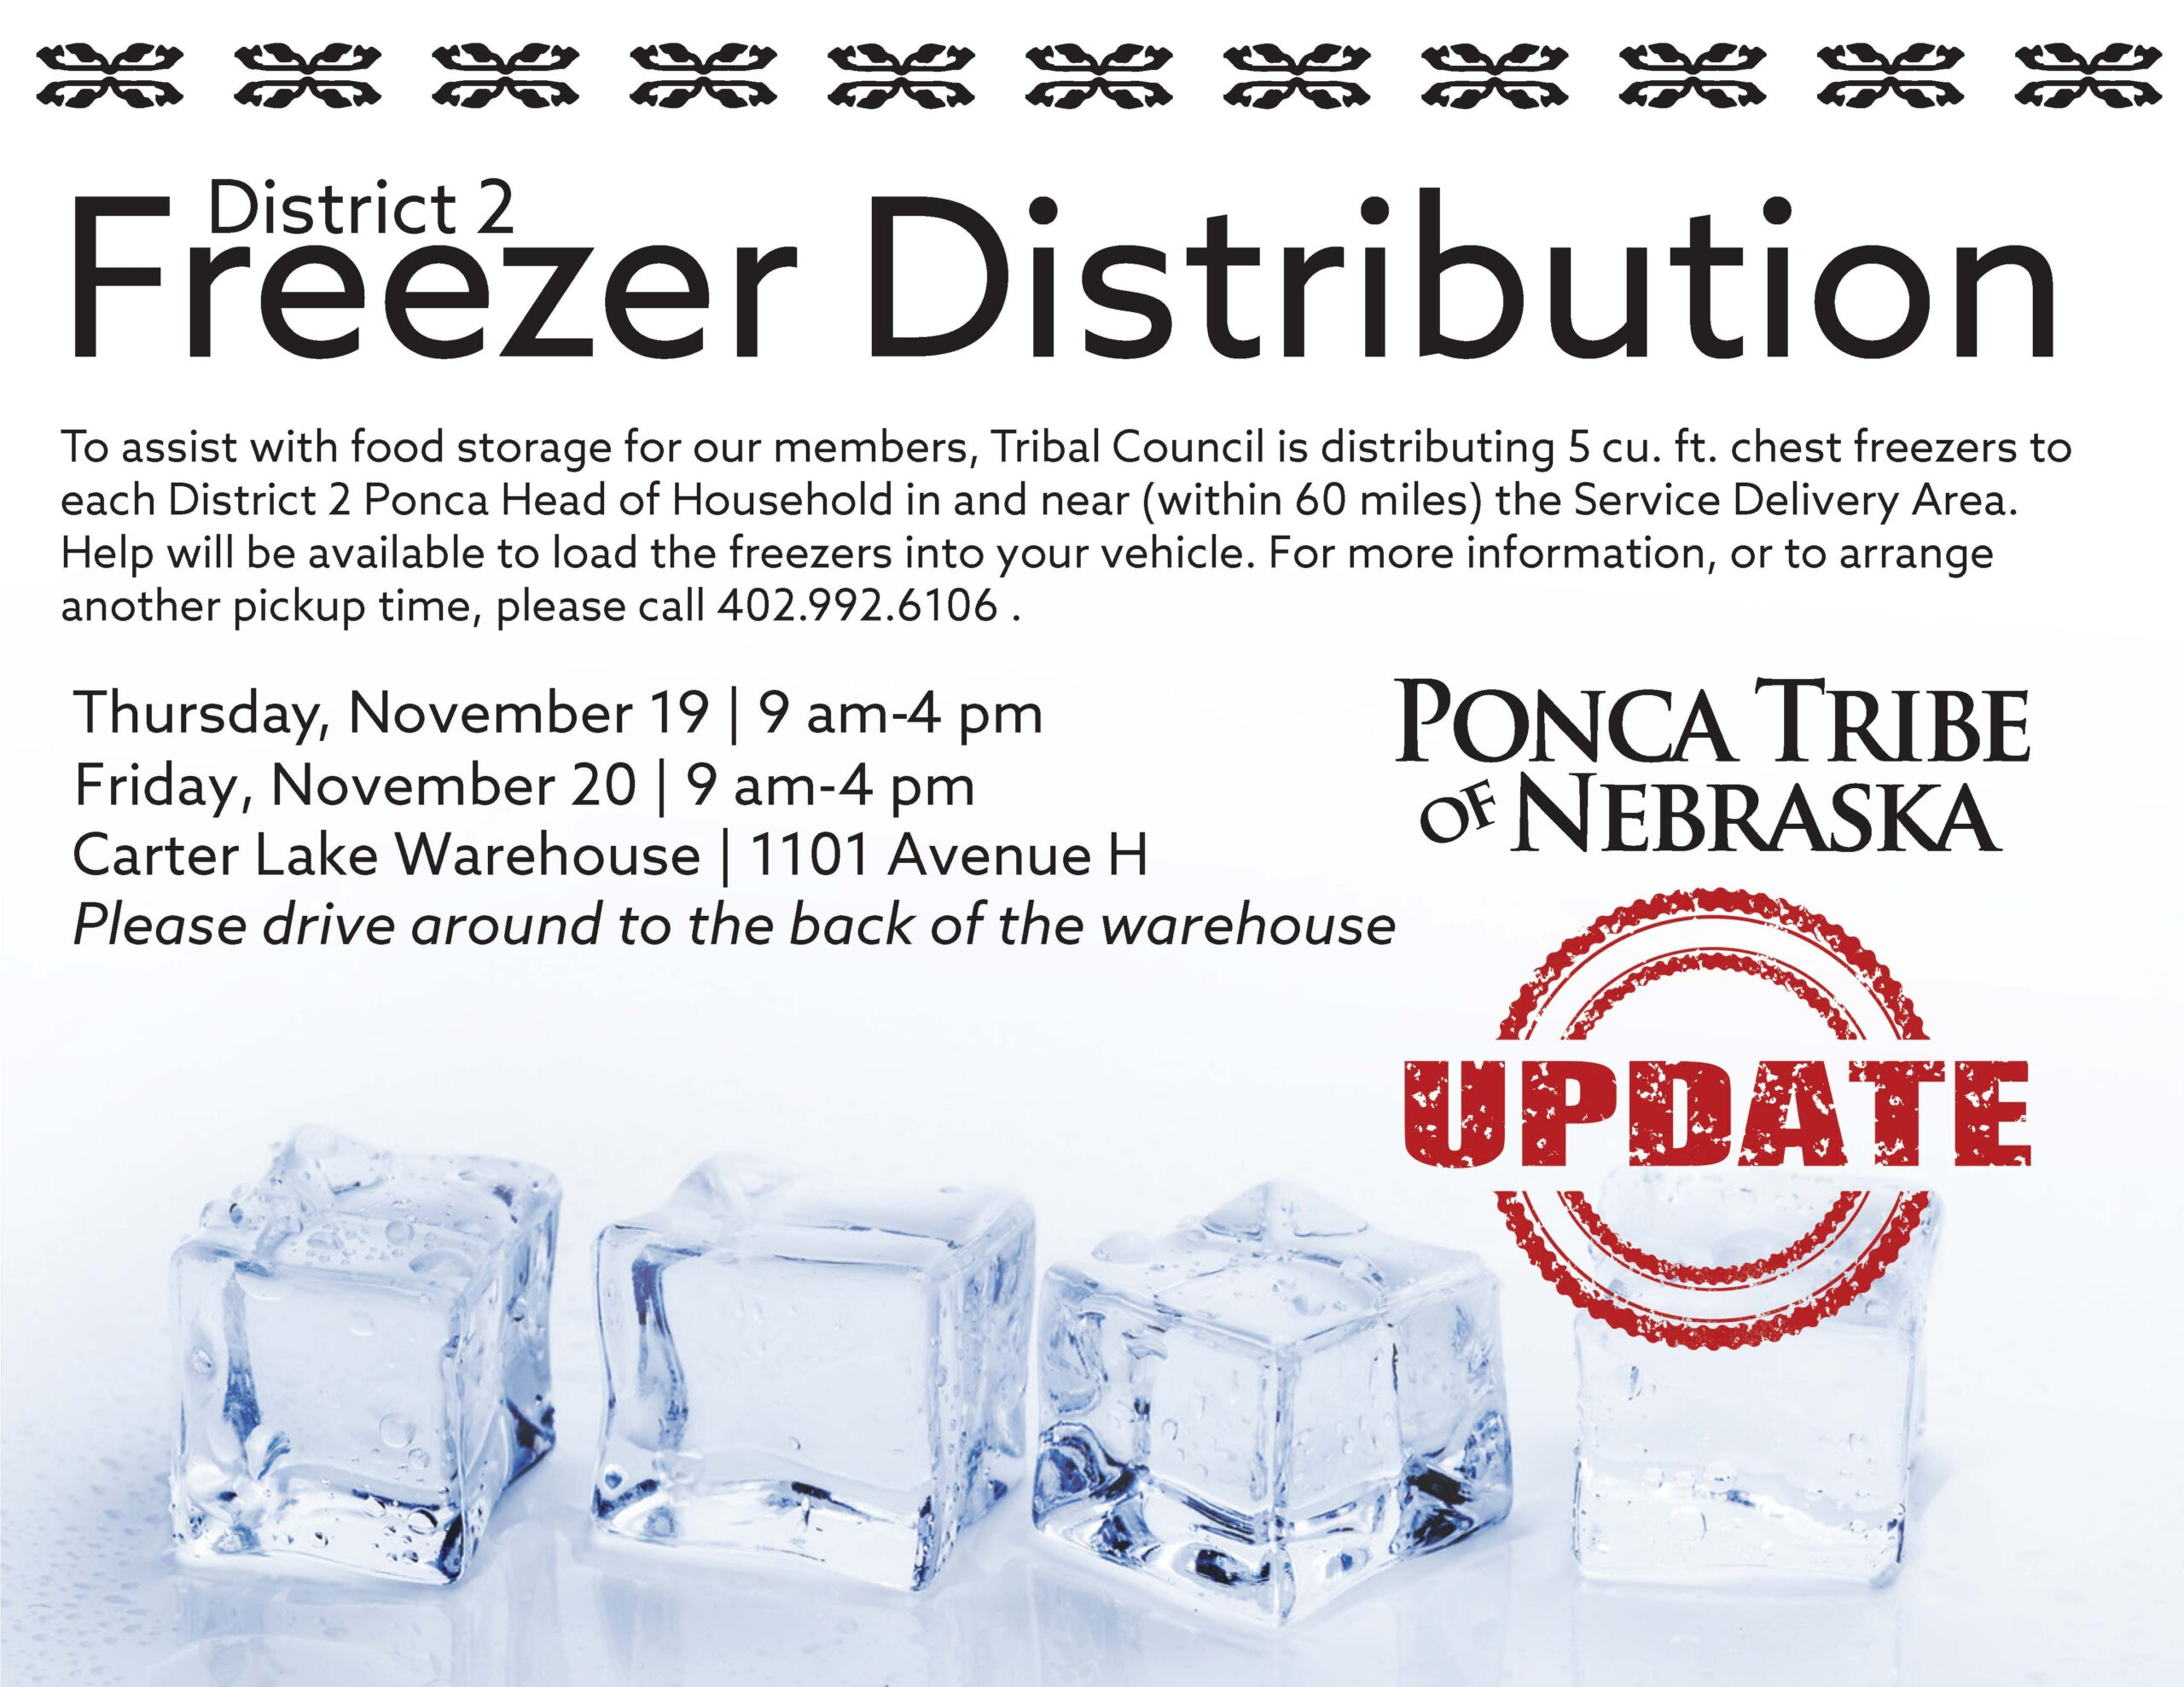 District 2 Freezer Distribution Update